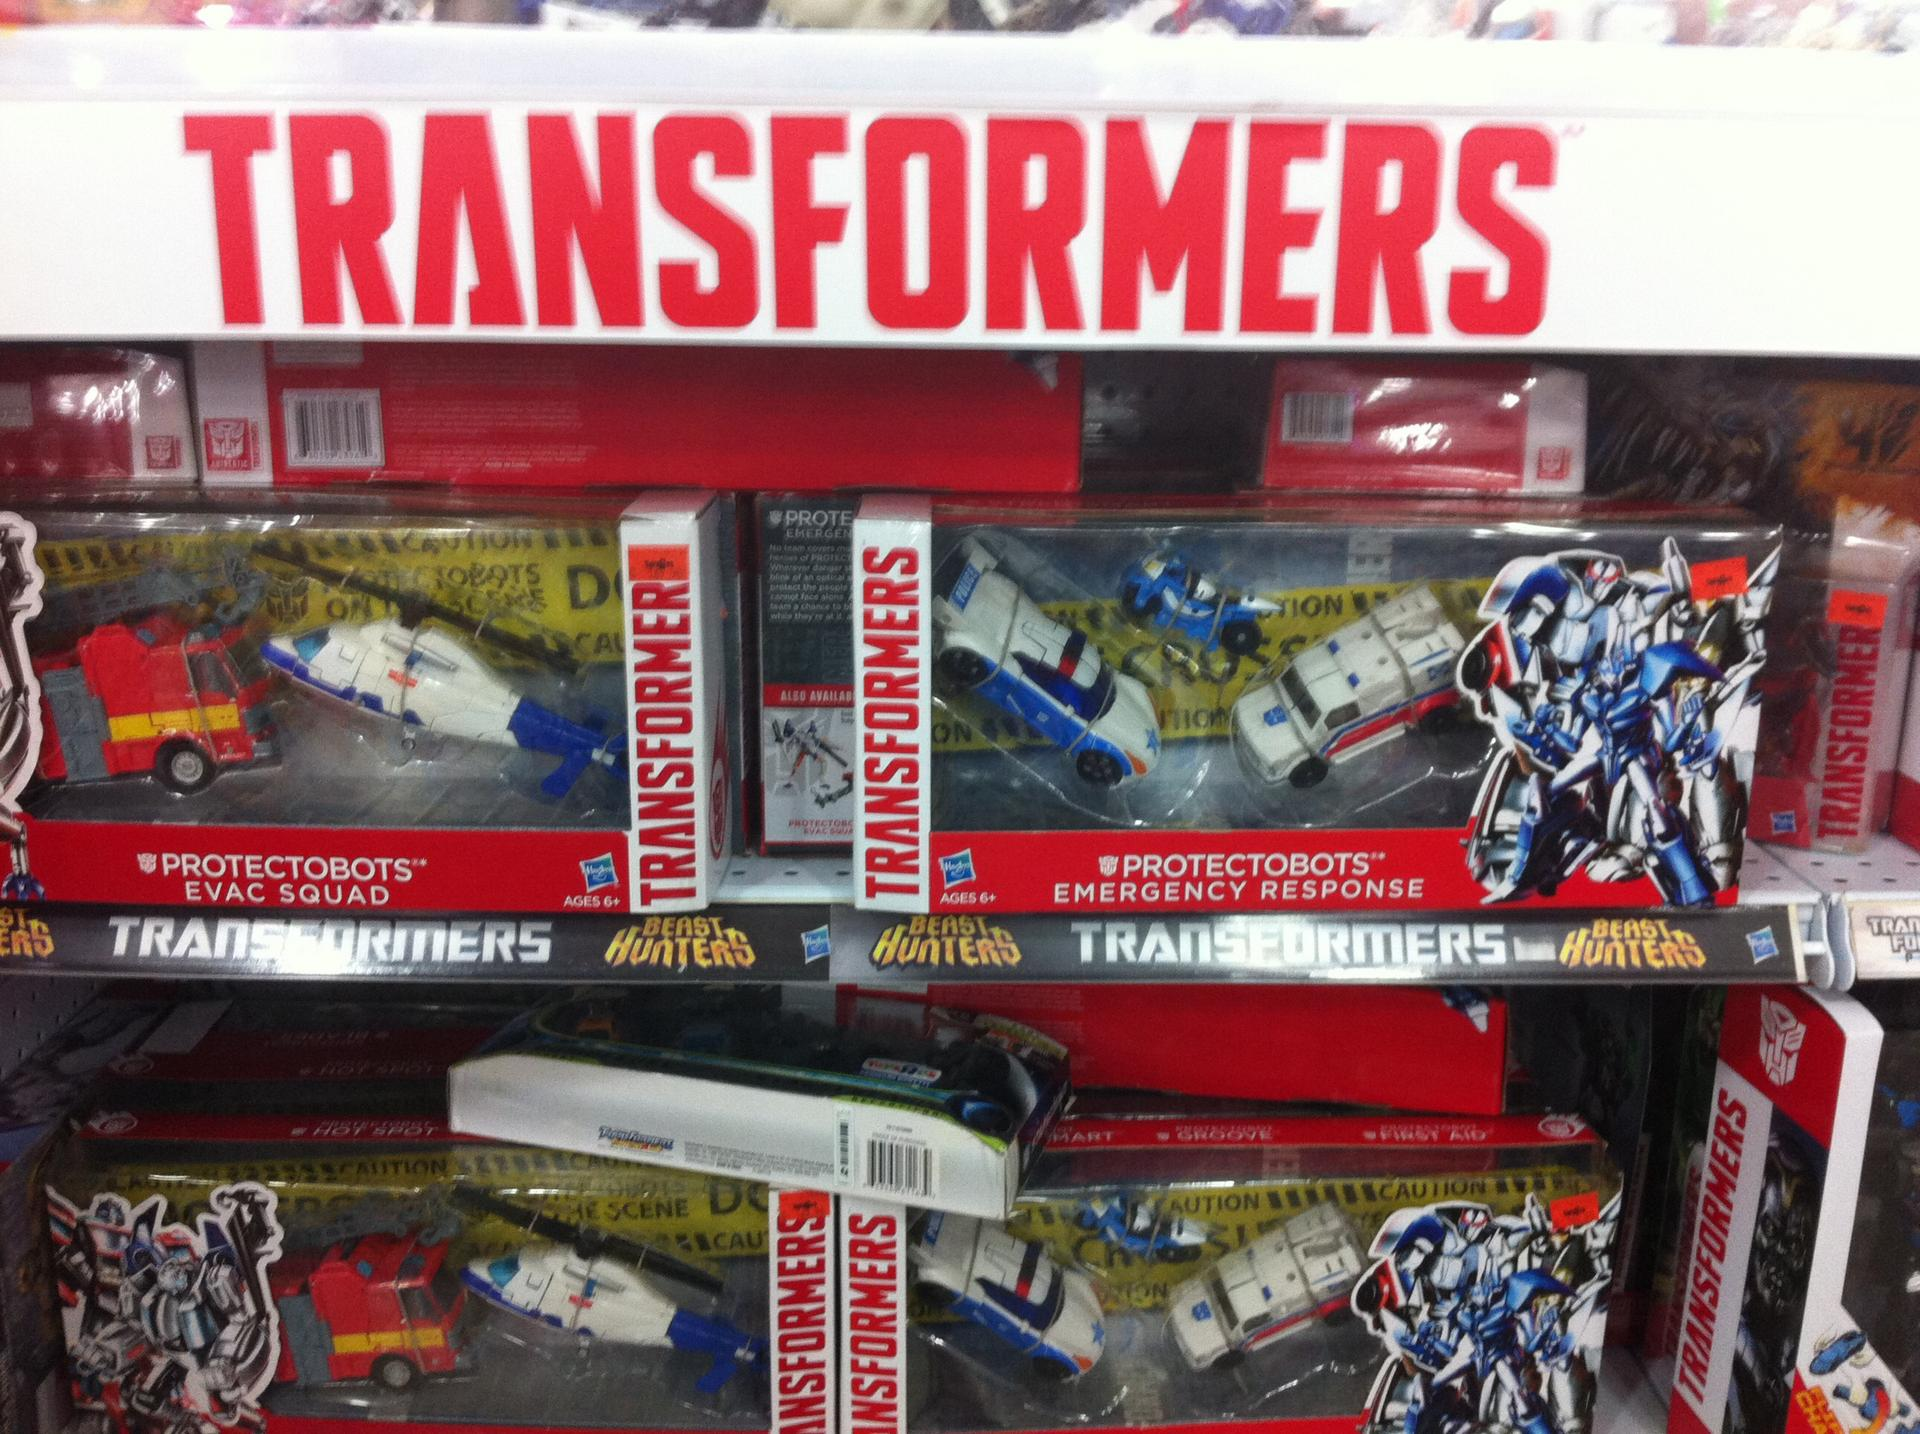 27468868d1411304609-protectobots-sets-found-toy-r-us-malaysia-image